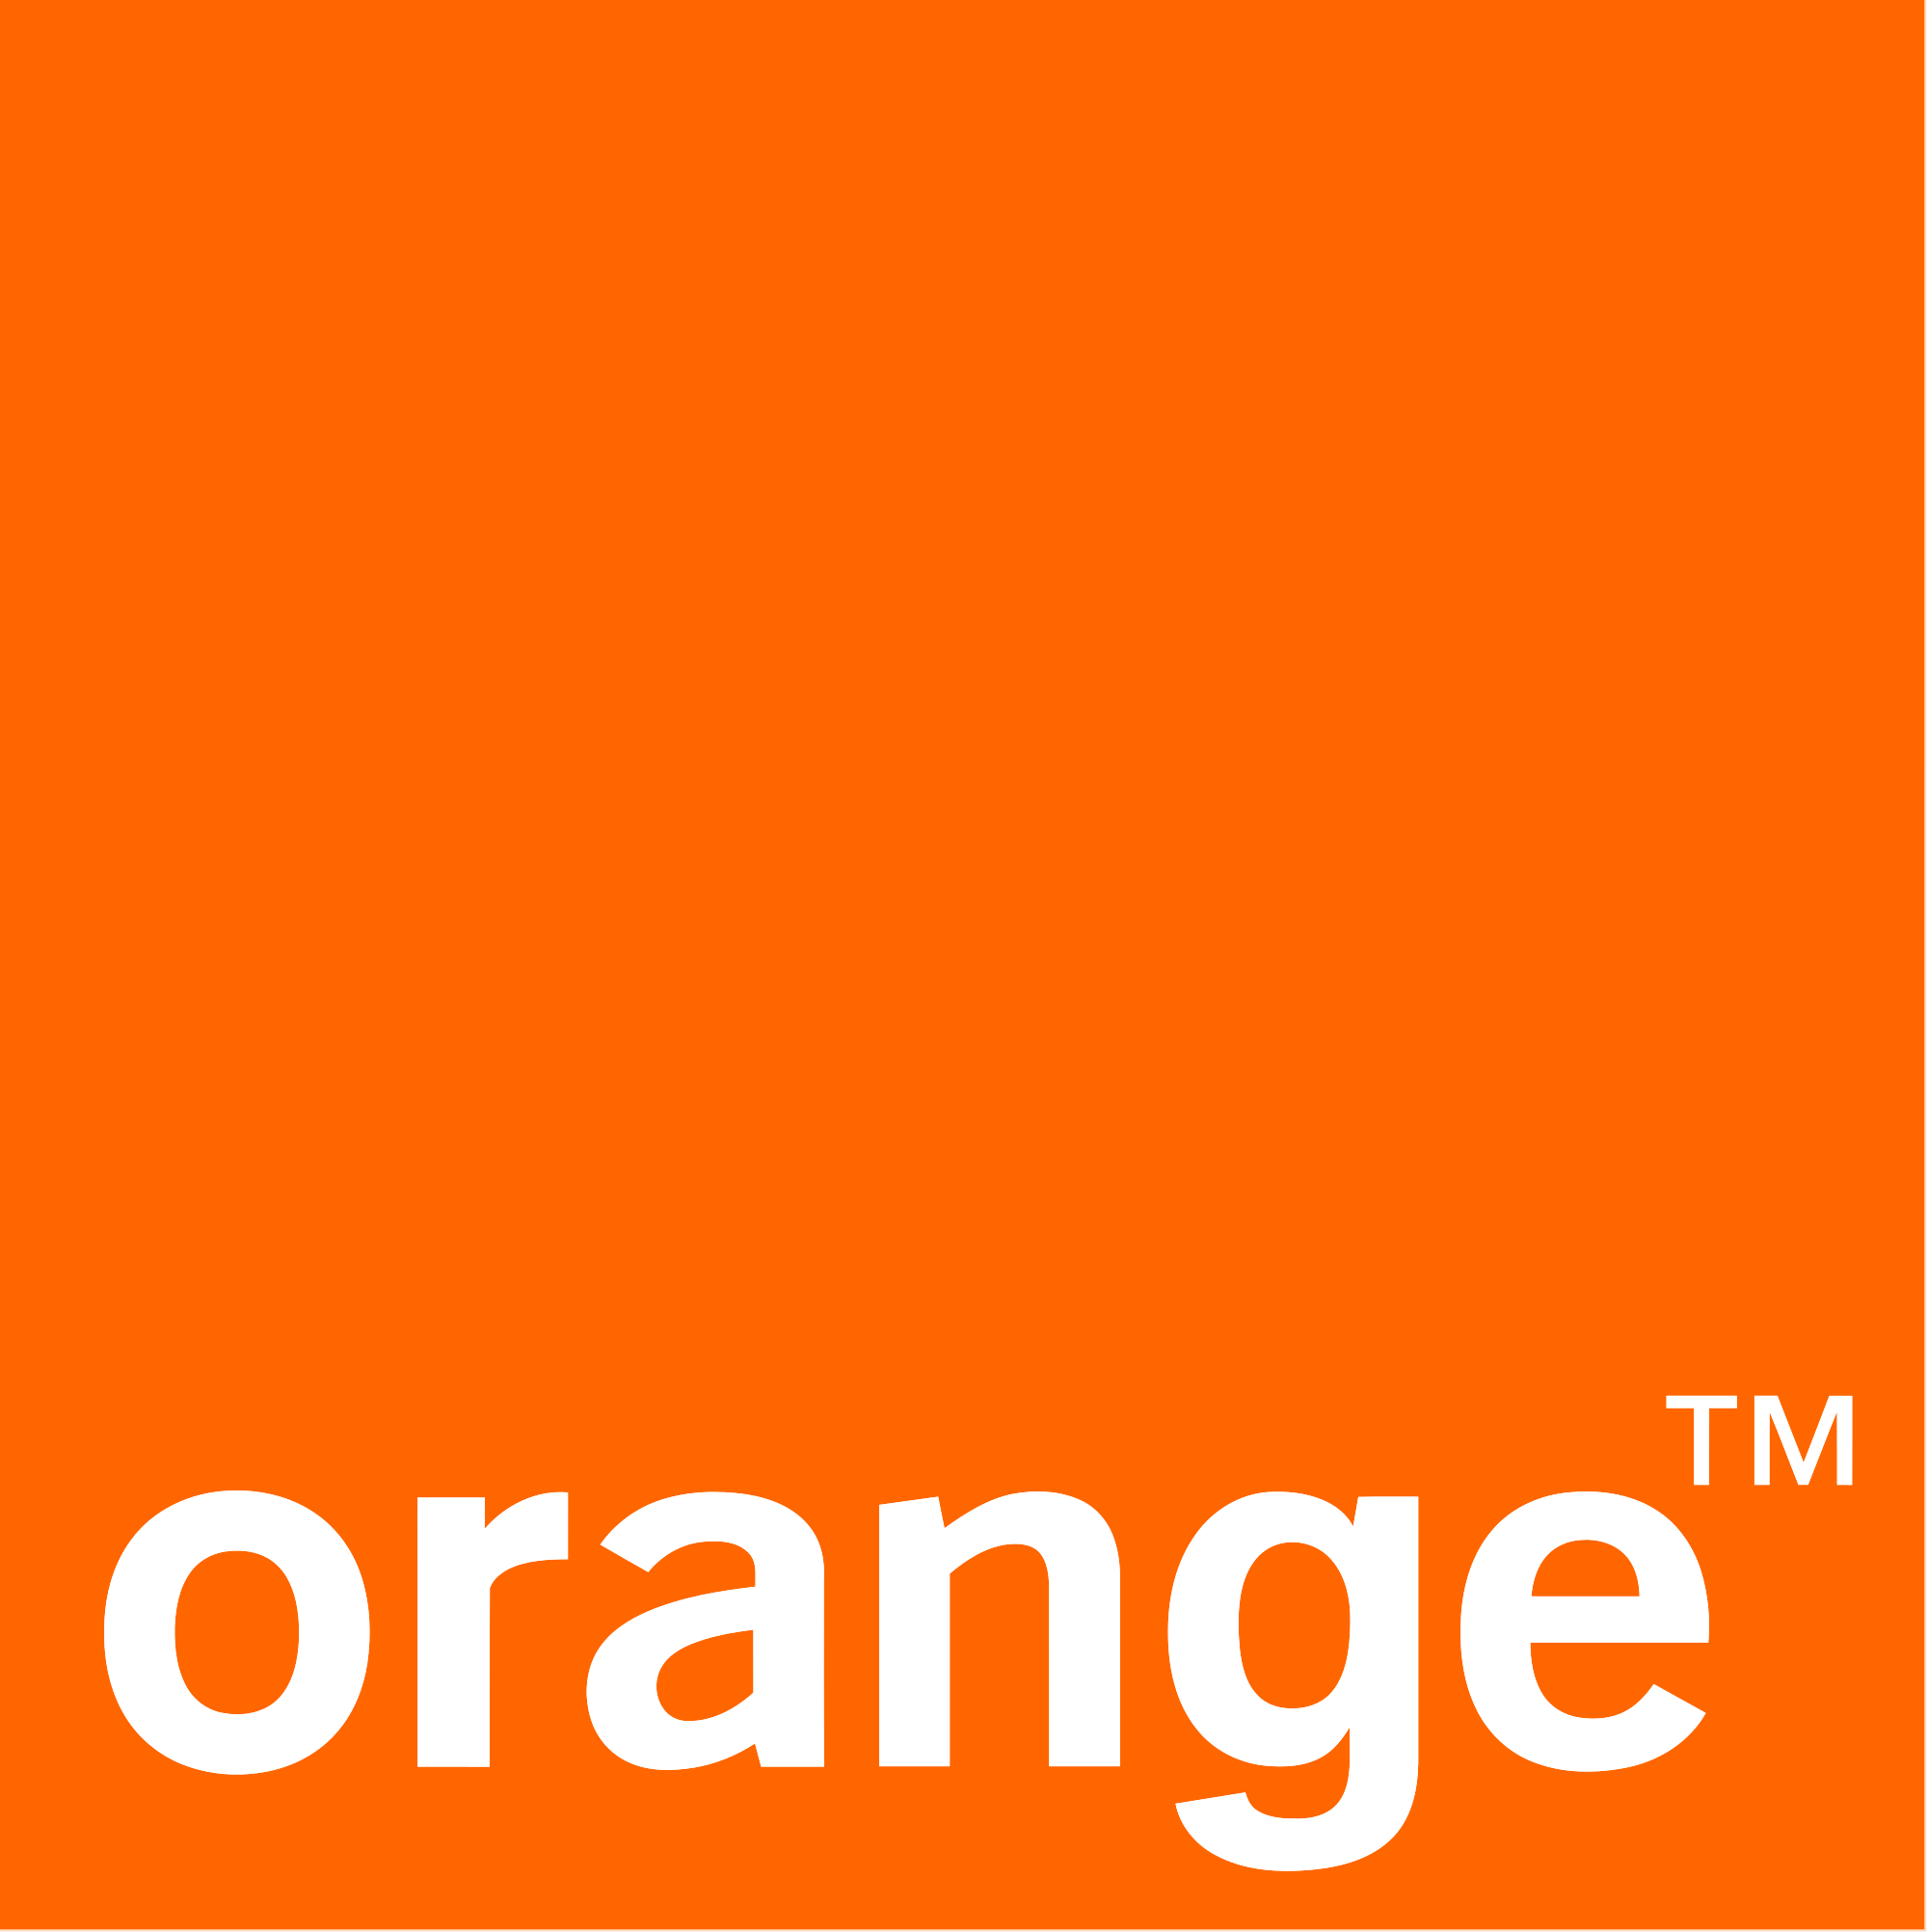 Orange Logo - File:Orange logo.svg - Wikimedia Commons